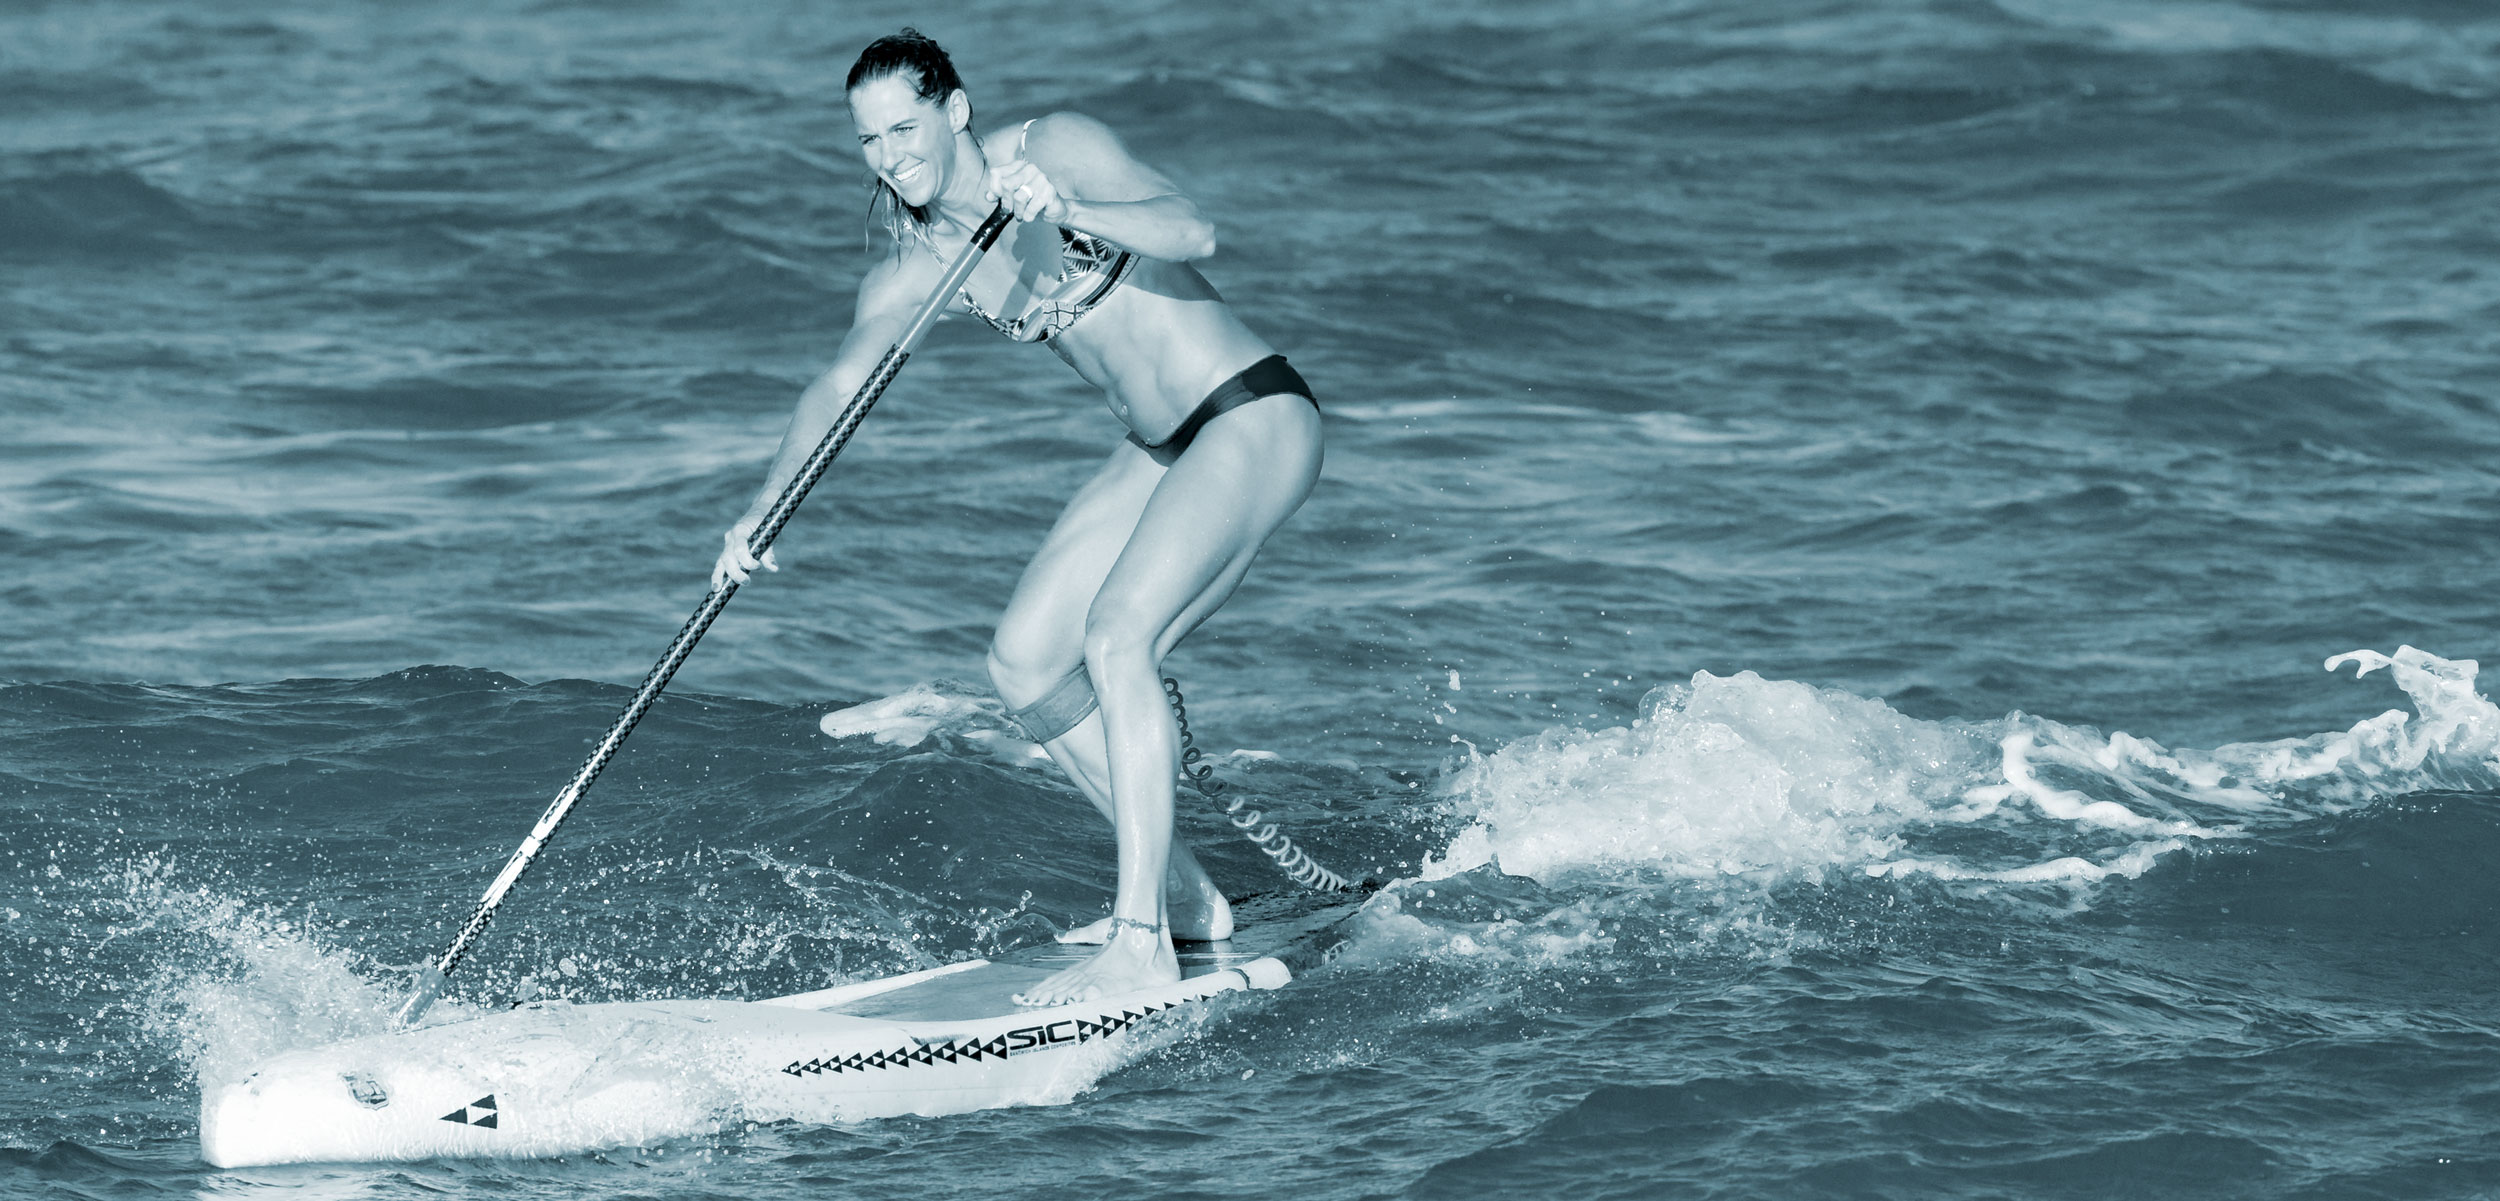 pro stand-up paddleboarder Seychelle